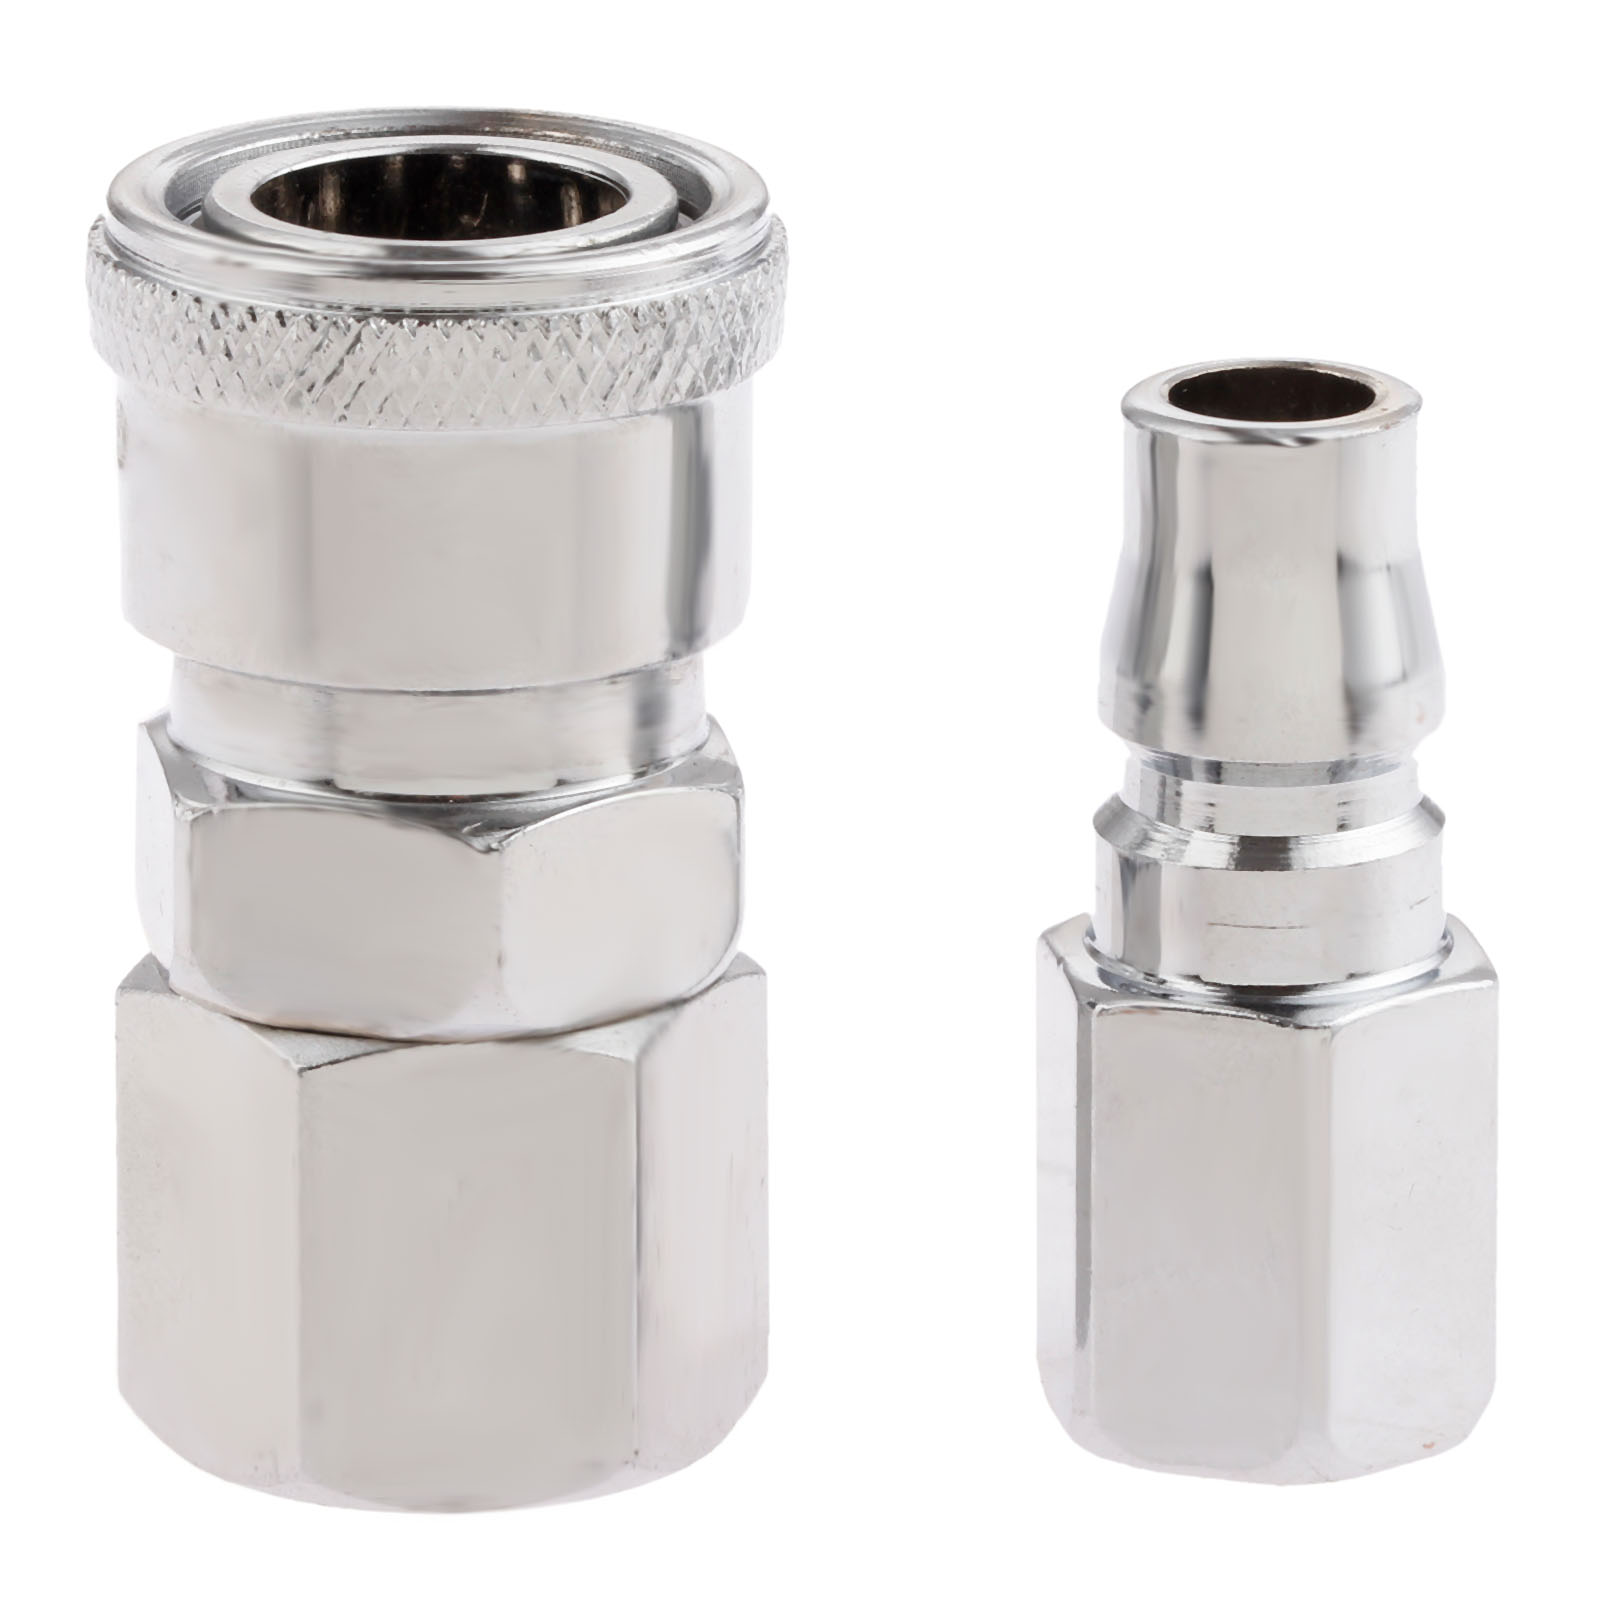 2Pcs Pneumatic Fittings Euro Air Line Hose Compressor Connector Quick Release 1/4BSP Female Thread Coupler Connector Fittings air pneumatic connector 6mm od hose tube push in m5 1 8 1 4pt 3 8 1 2 bspt male thread l shape gas quick joint fittings